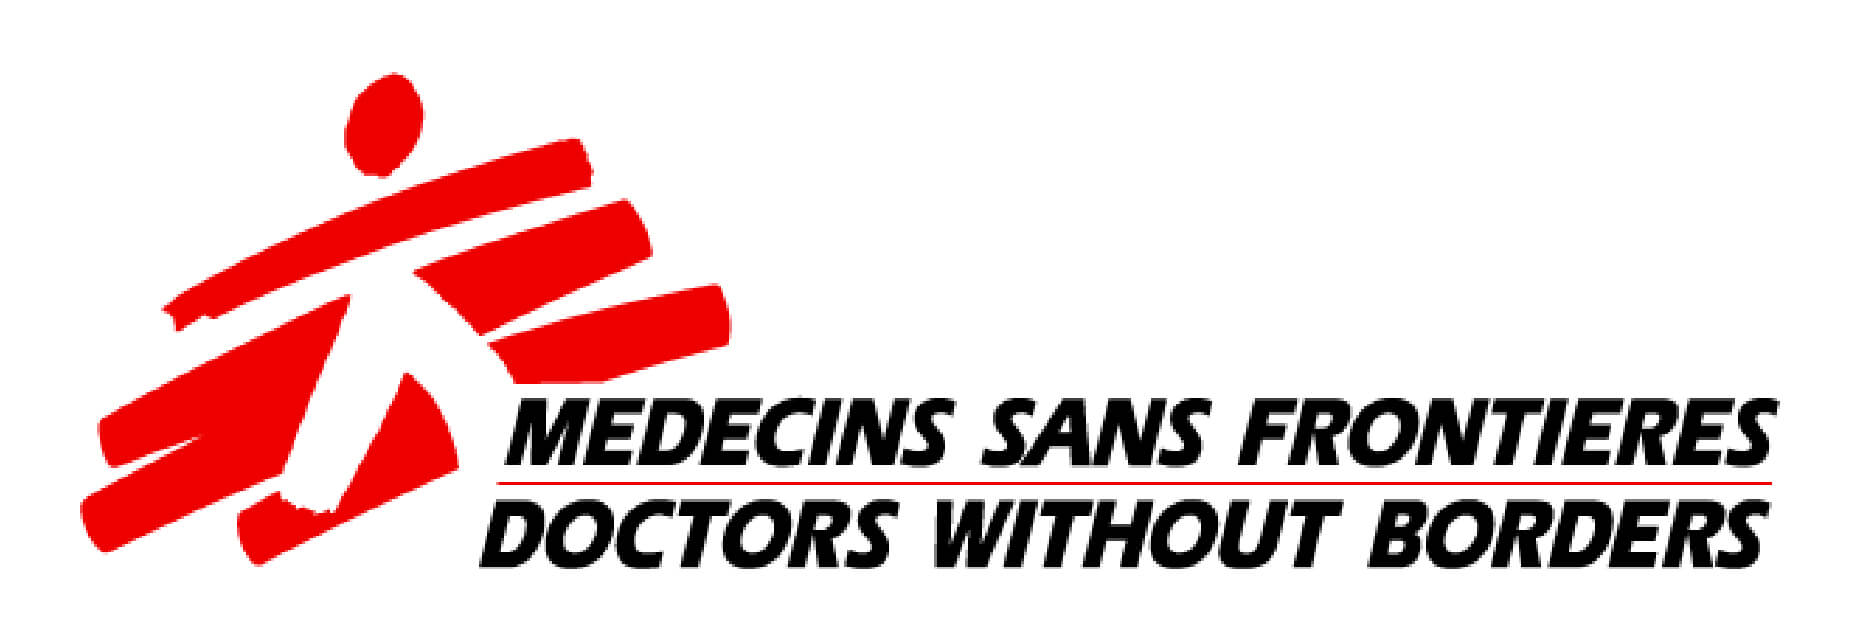 DOCTORS WITHOUT BORDERS CANADA